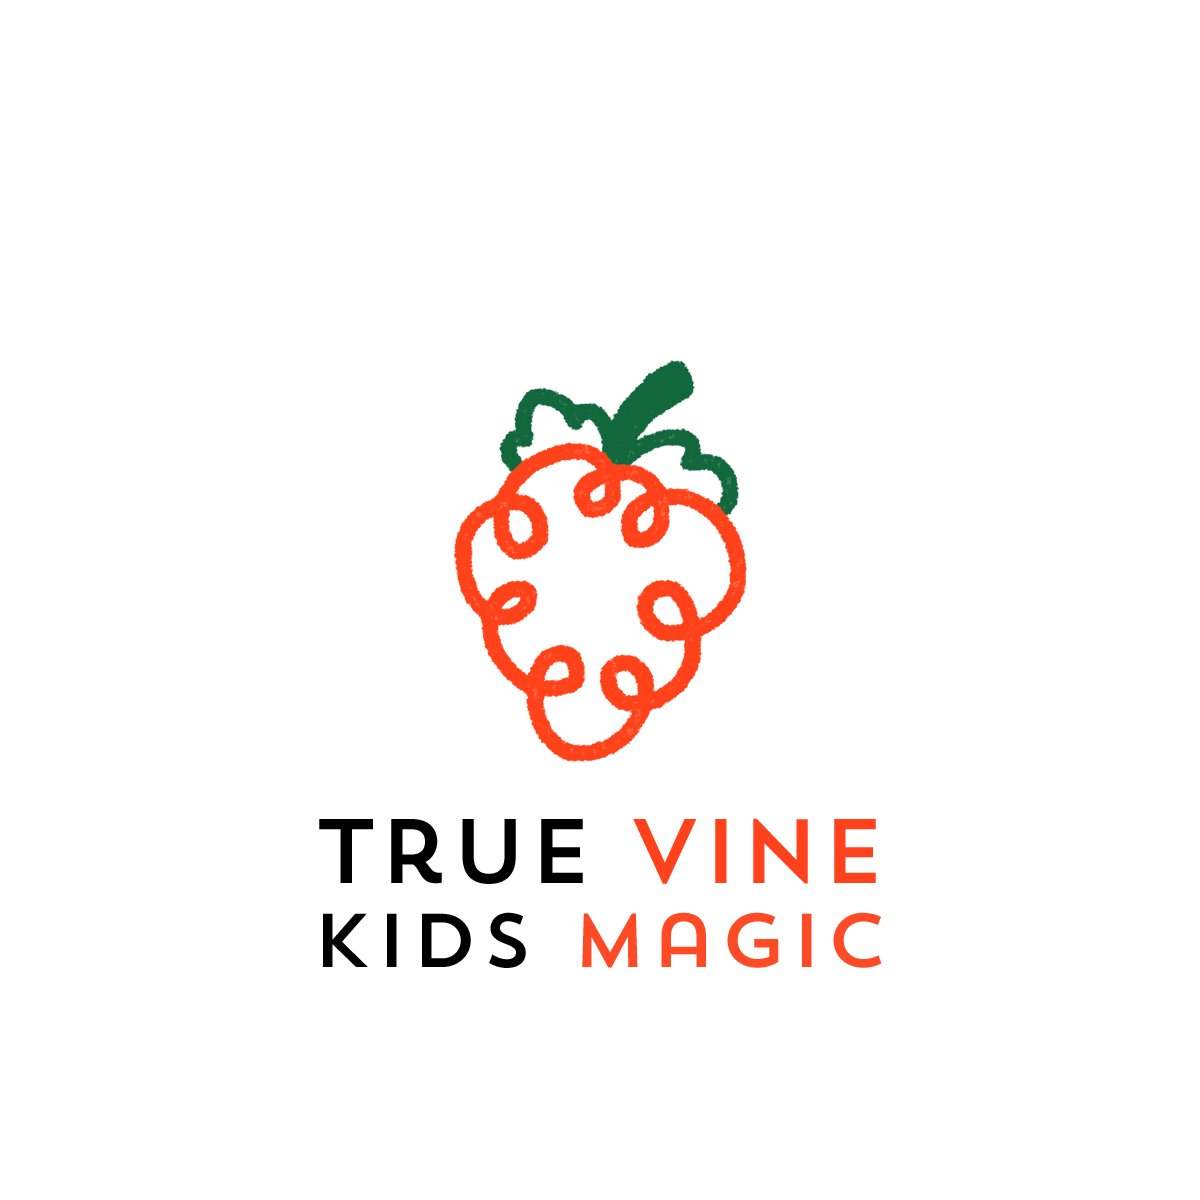 True Vine Kids Magic: Virtual Magic Show @ $249 - BYKidO